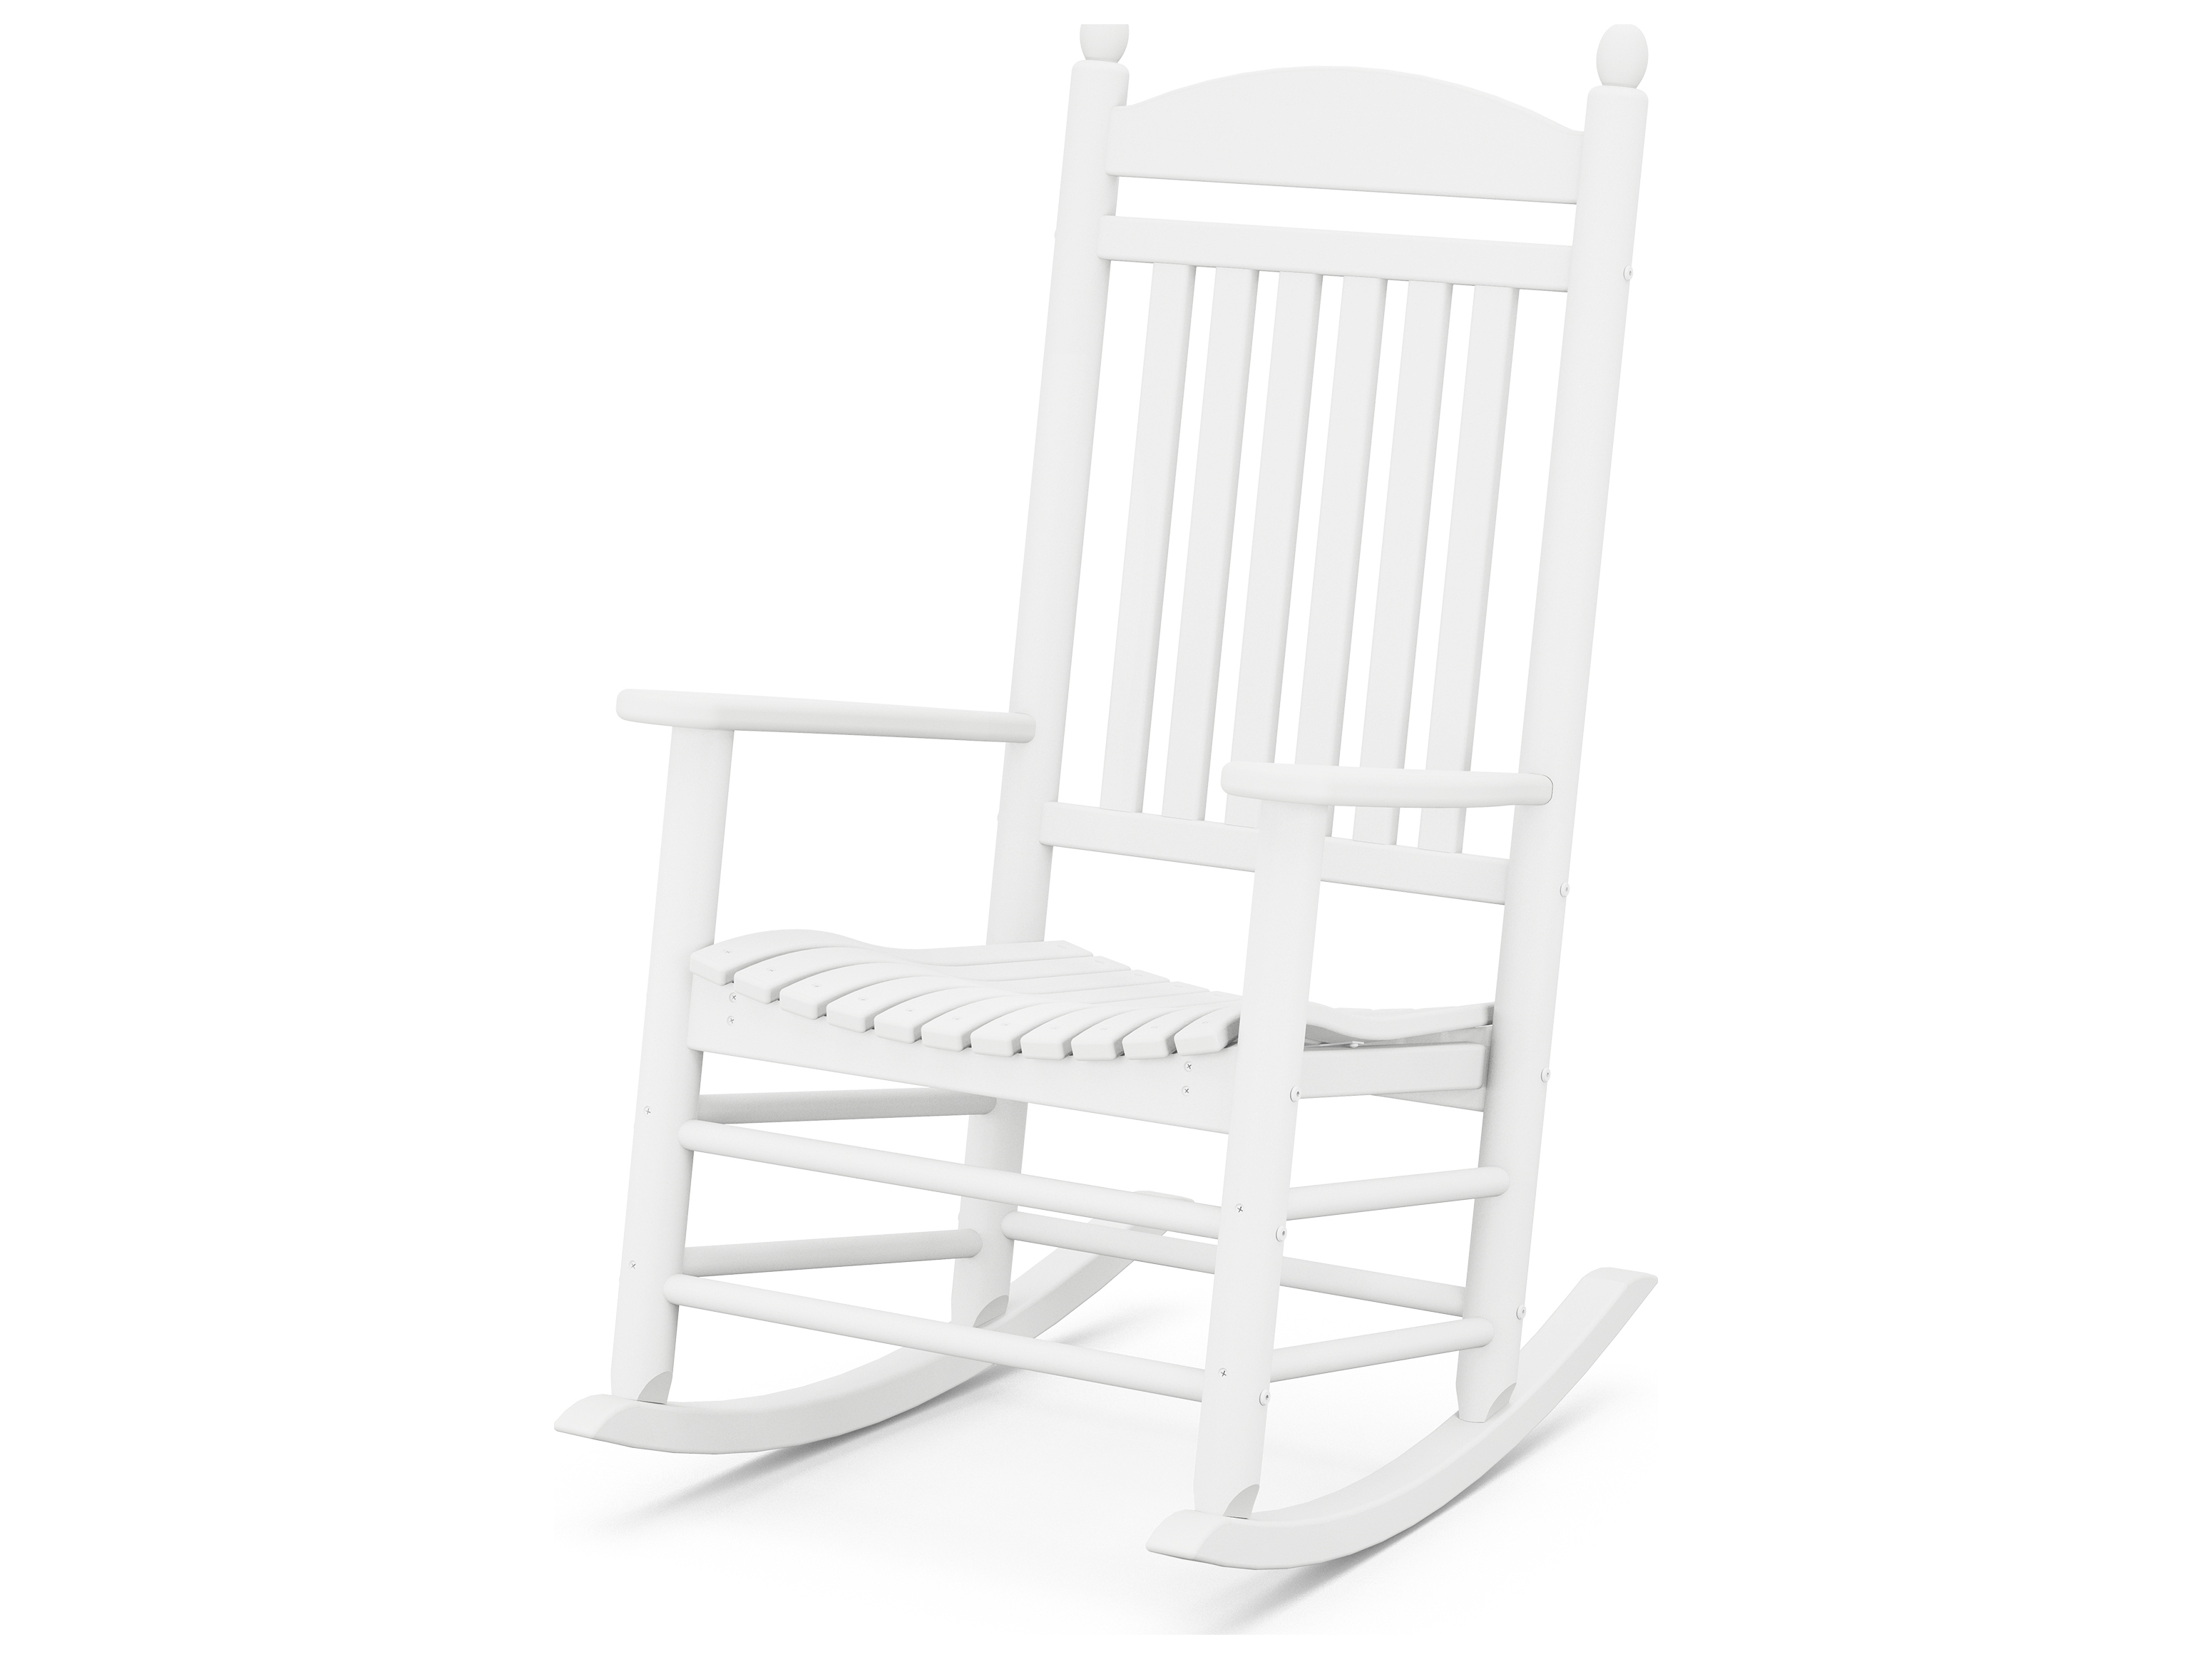 POLYWOOD Rocker Recycled Plastic Arm Lounge Chair